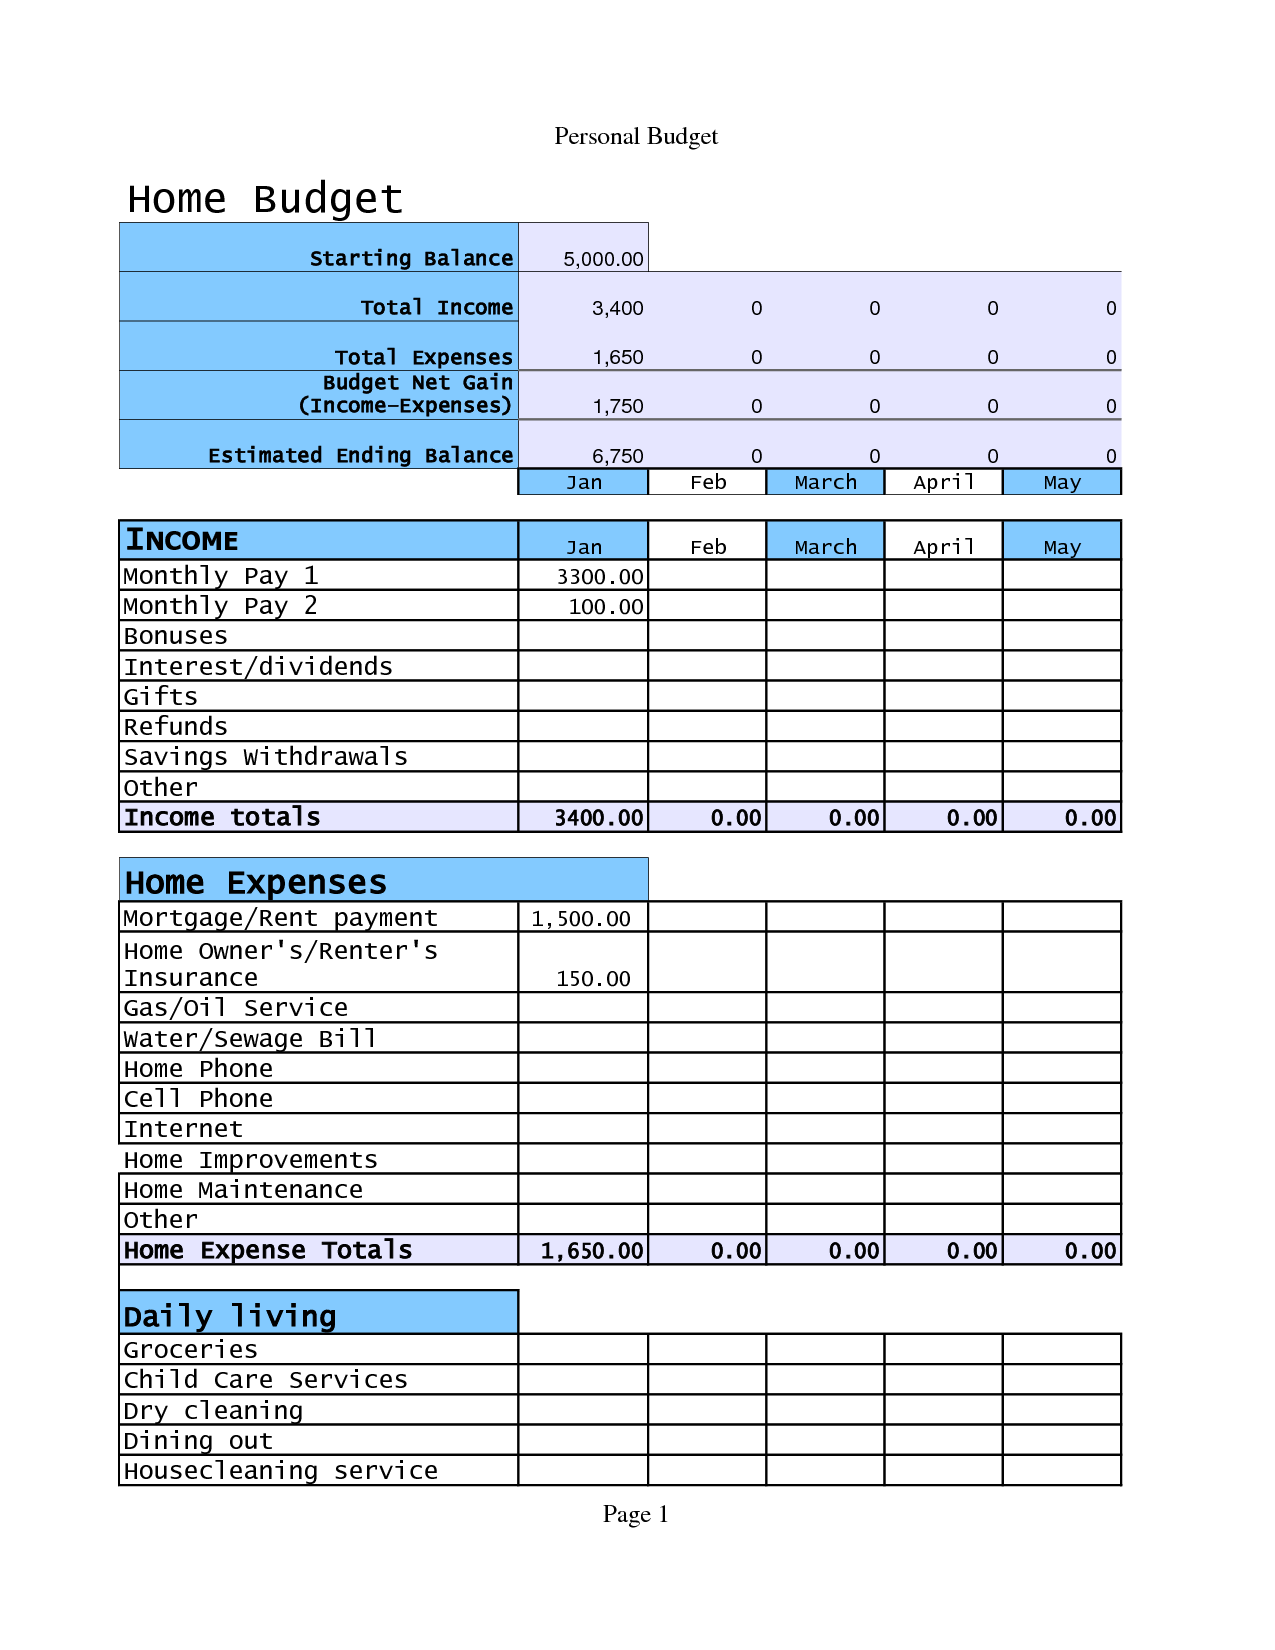 Home Budget Template Example